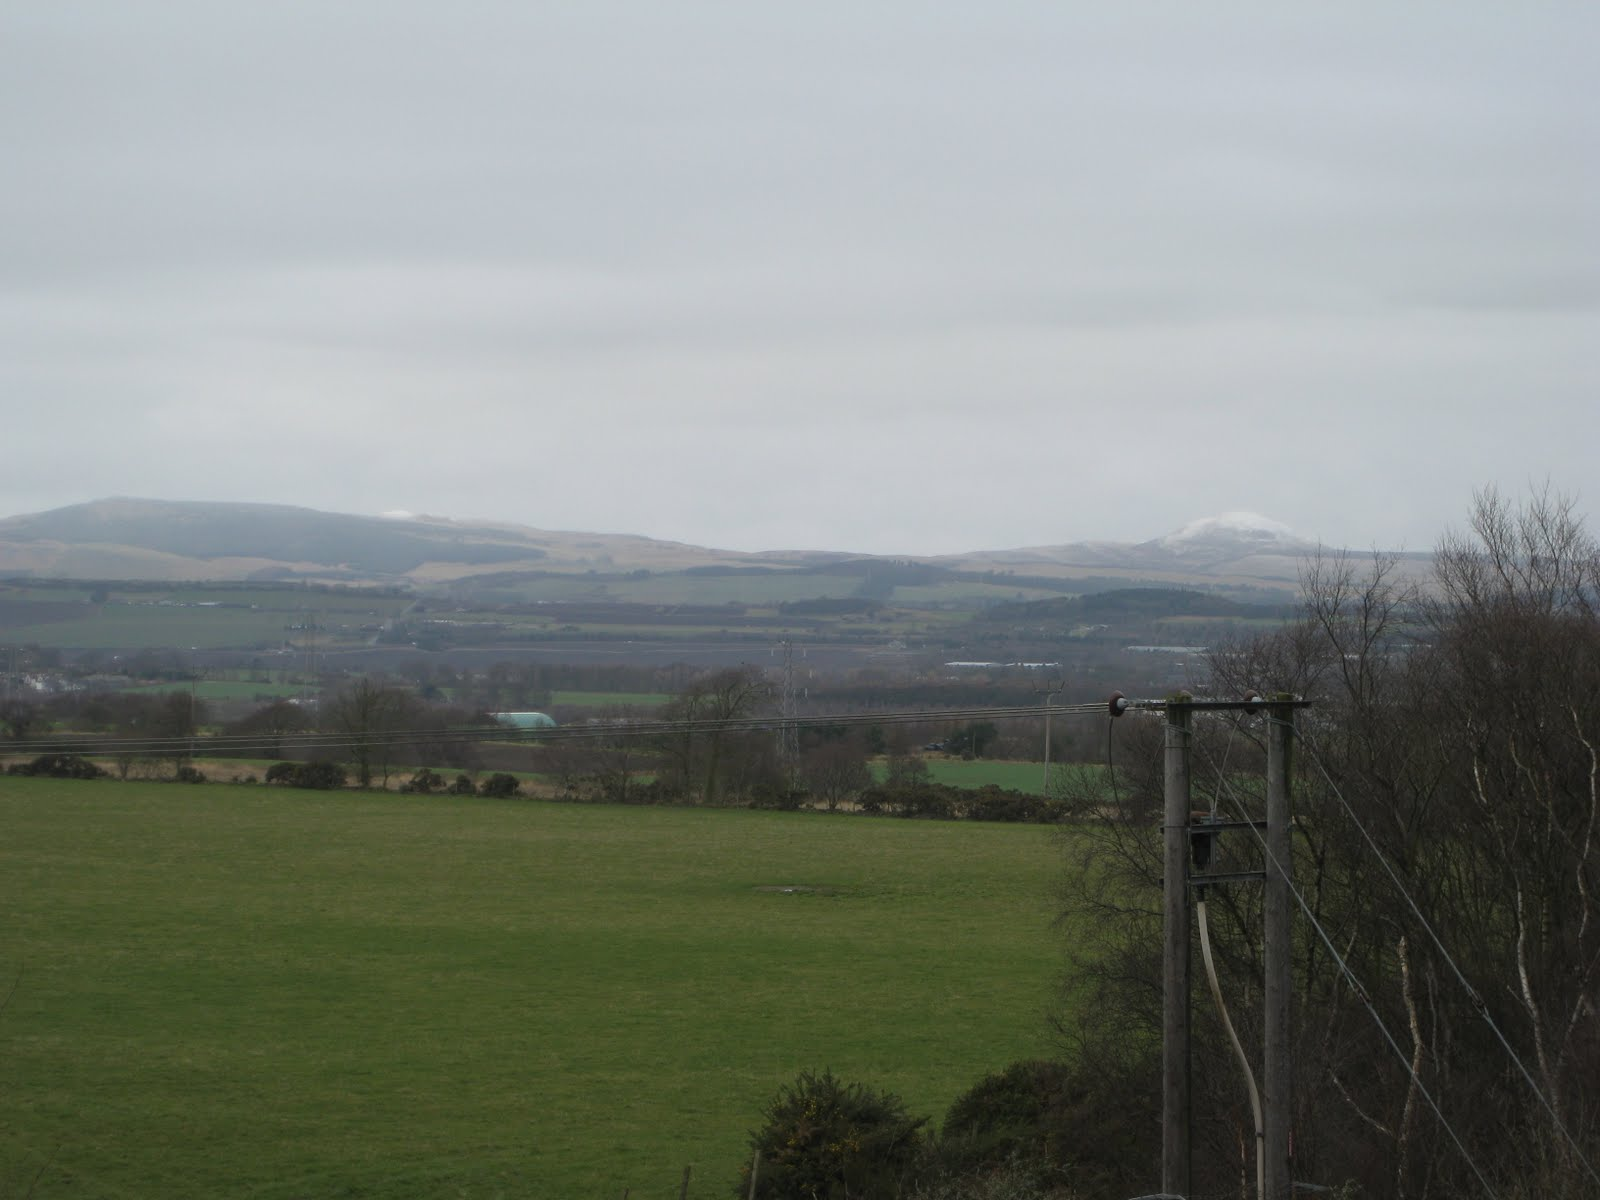 Note the snow on the hills in Fife